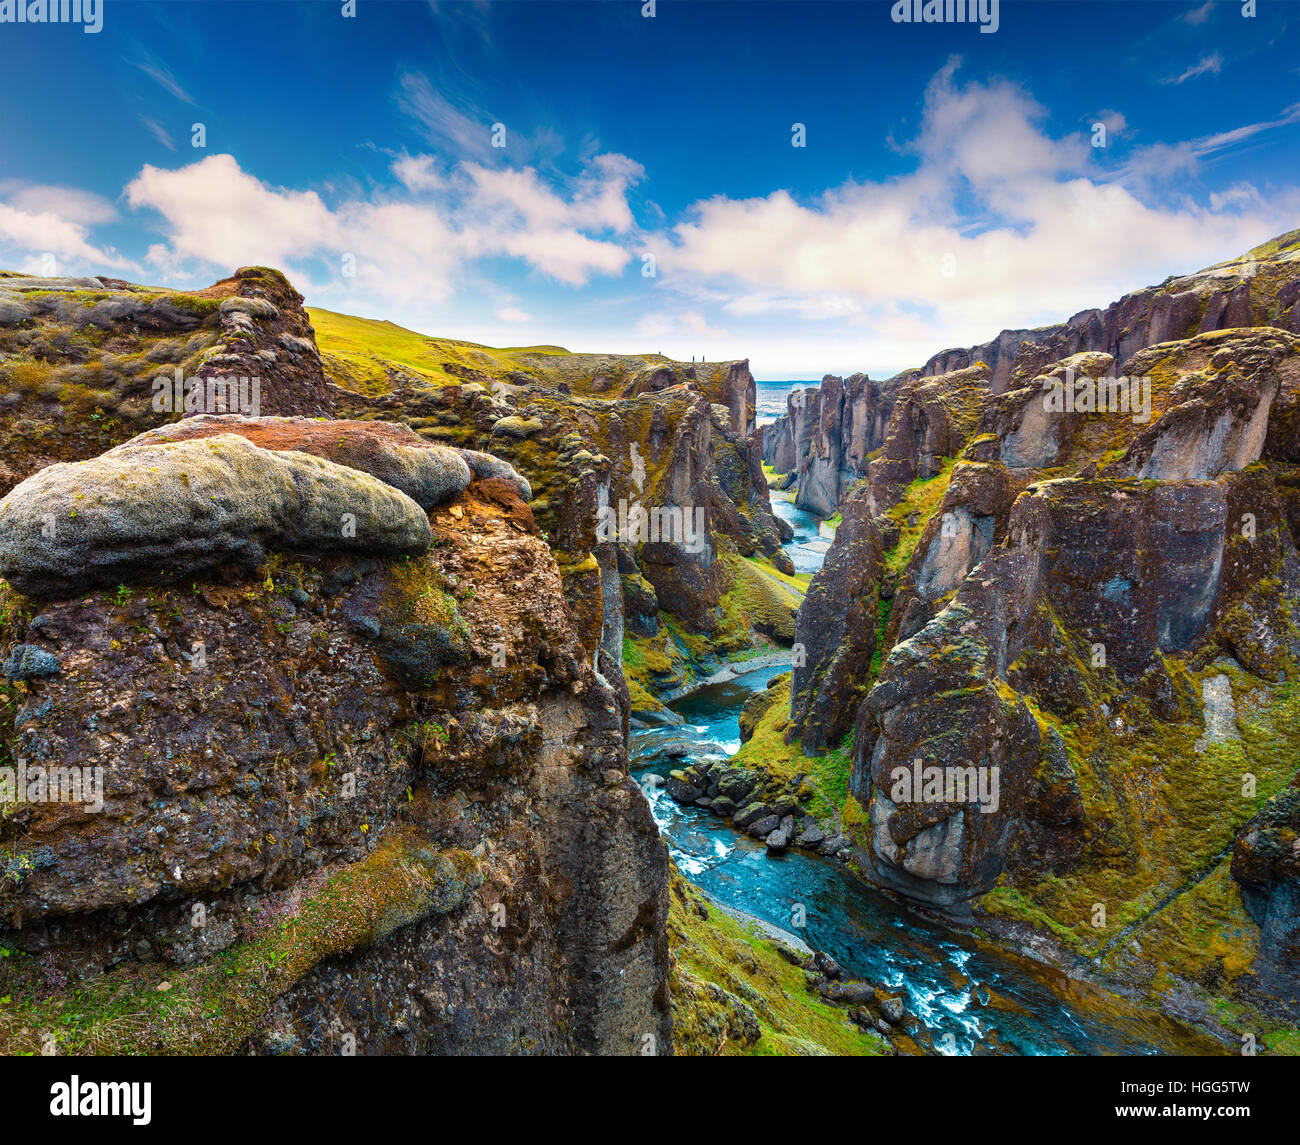 Majestic view of Fjadrargljufur canyon and river. South east Iceland, Europe. Artistic style post processed photo. - Stock Image